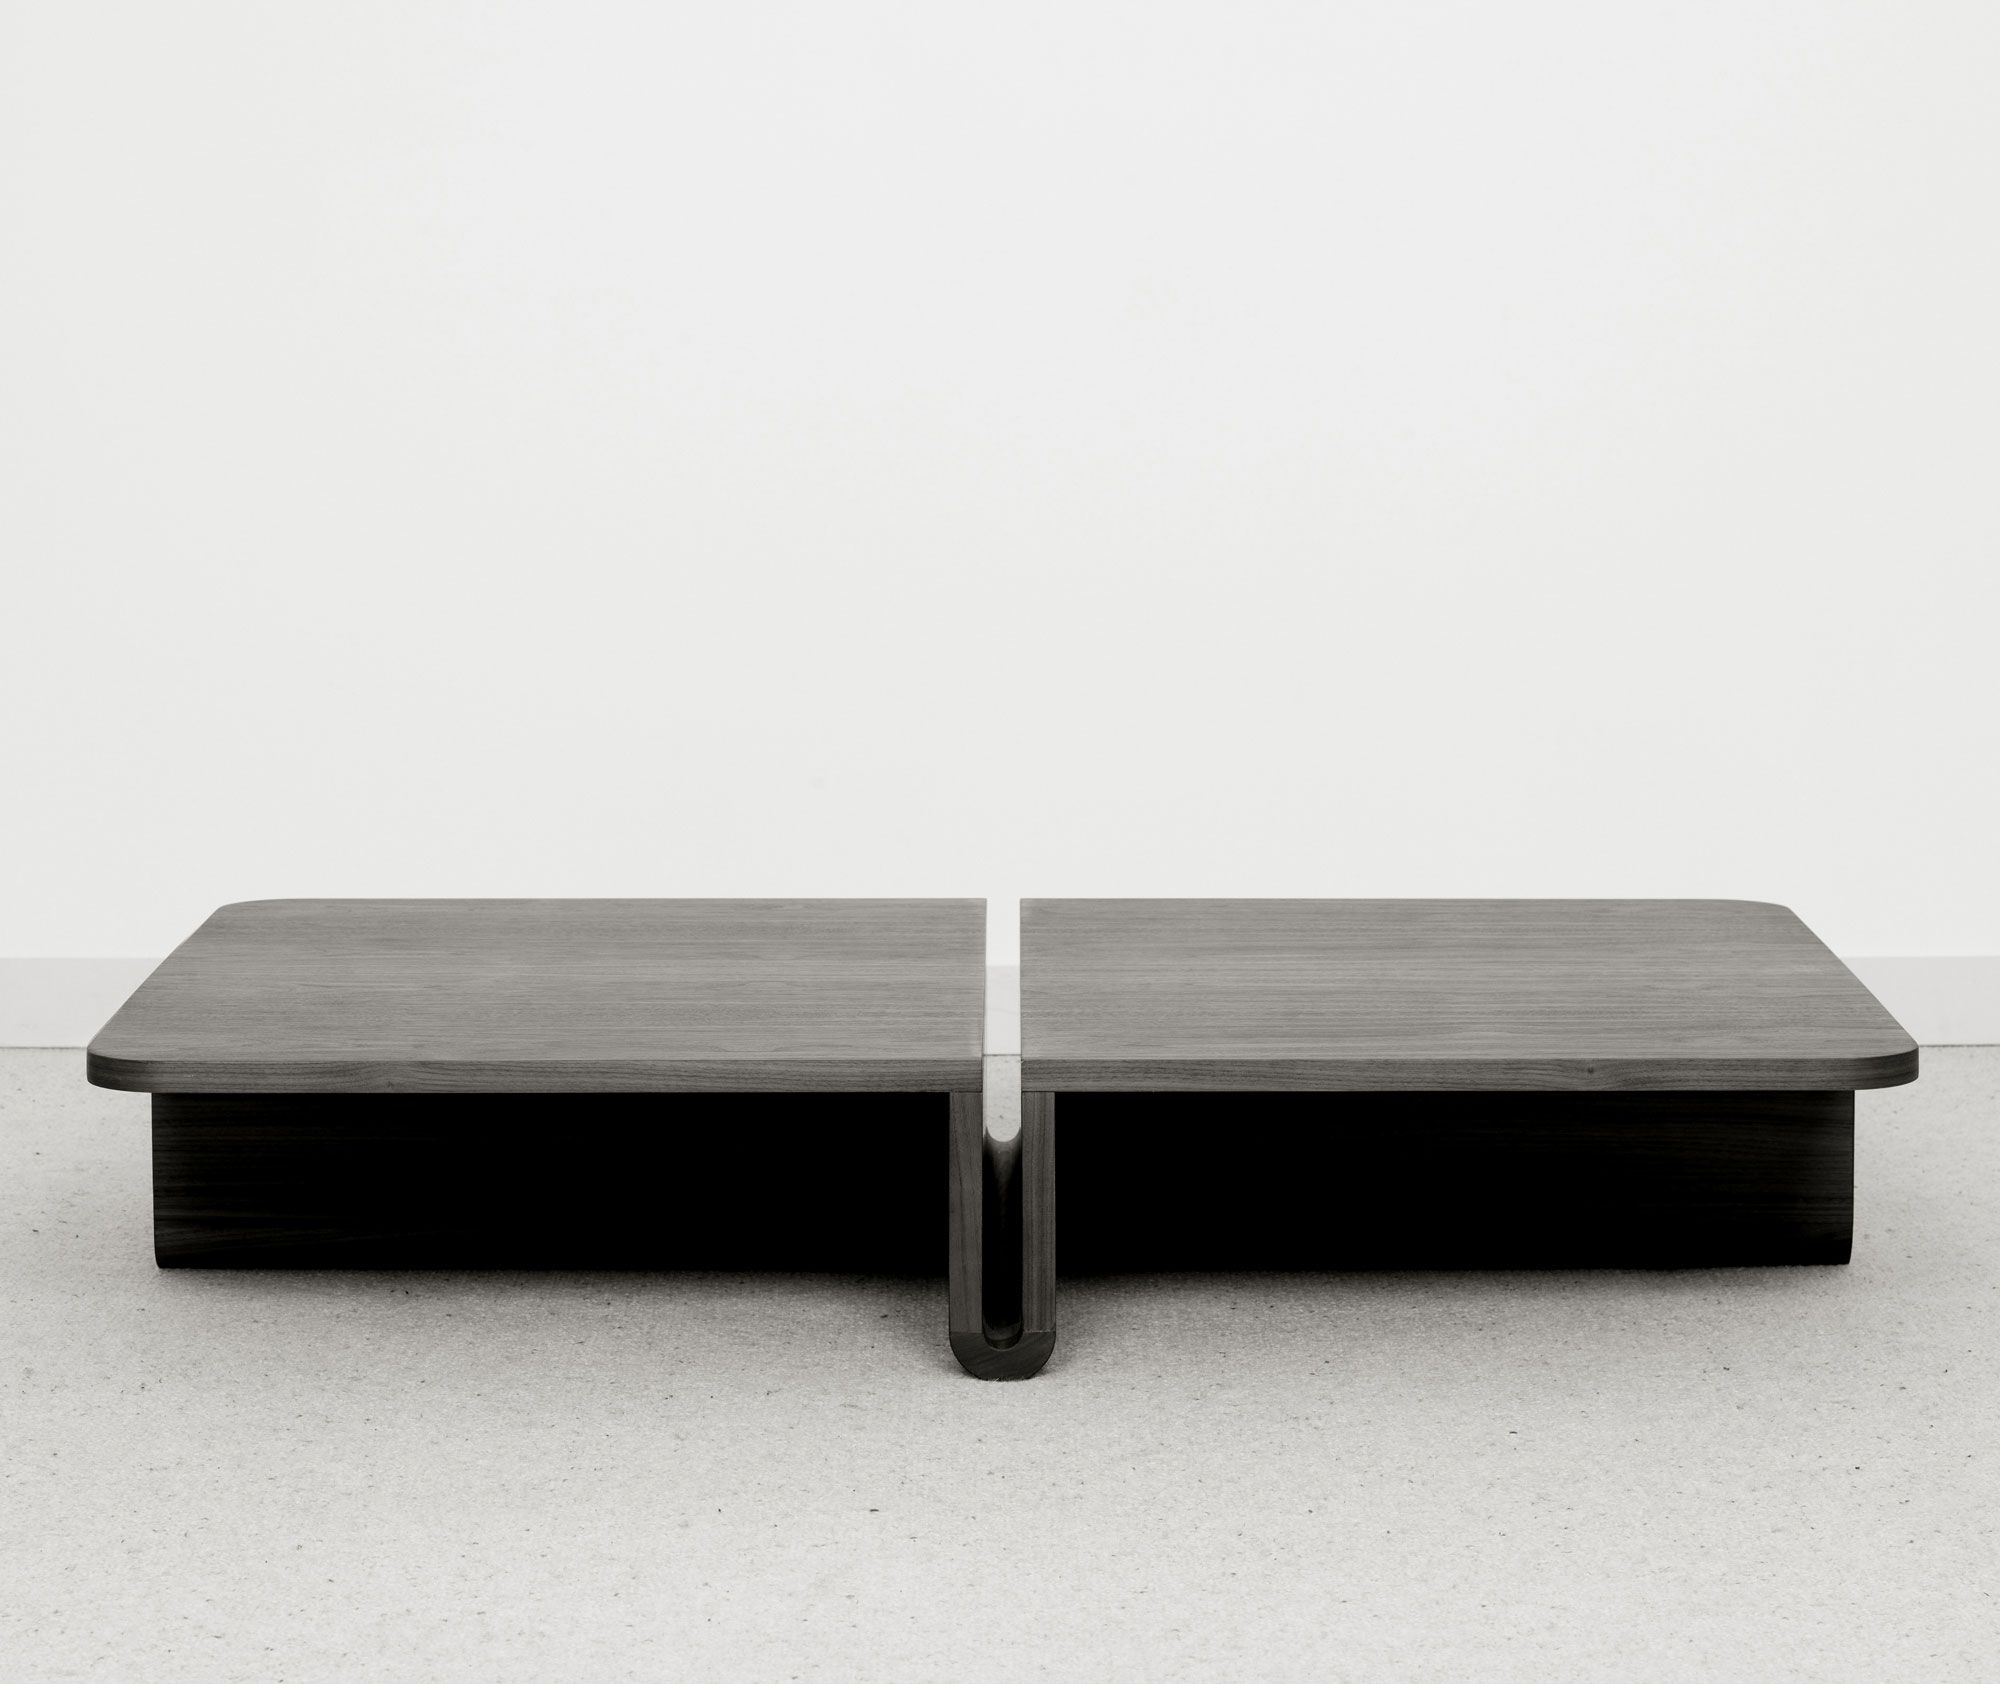 Table Basse Dup Rectangulaire Christophe Delcourt Low Tables Table Furniture Rectangular Coffee Table